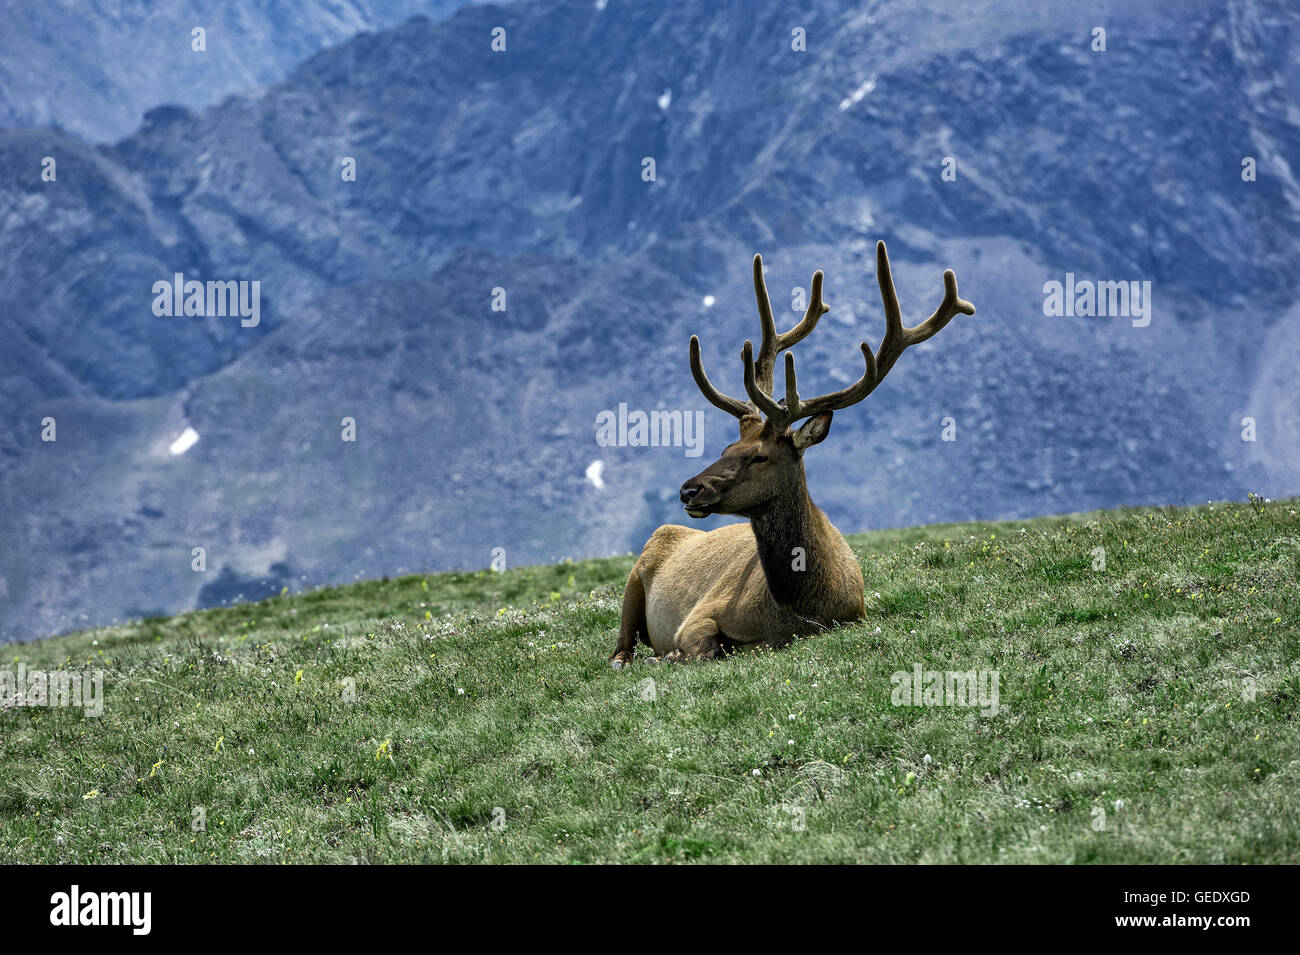 elk mountain guys Guy's top 3 wyoming elk areas guy eastman, editor-in-chief january 9, 2017 elk,  the shirley mountain unit may be one of the best chances in wyoming for an elk hunter to kill a nice six-point bull with relatively little effort  do you guys support backcountry hunters and anglers reply david carlin march 5, 2017 at 2:02 pm.